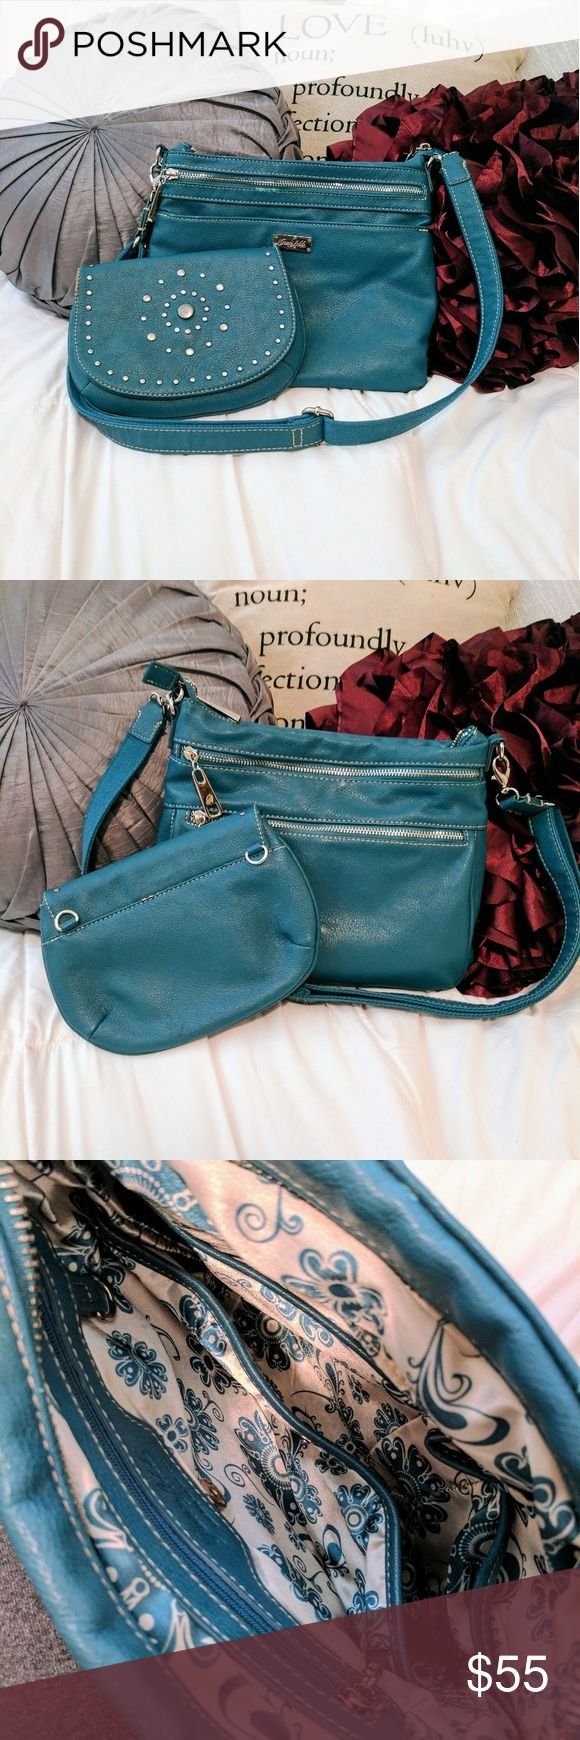 Grace Adele Purse and Wallet/Clutch (PRICE IS NEGOTIABLE) Teal purse and wallet/clutch combo from Grace Adele. Silver zippers and detailing. Very cute. Strap is adjustable. You can move the strap from the purse to the wallet/clutch. Soooo many pockets! Only minor thing is shown in the last photo. Other than that, everything is clean with no stains. Color best matches first and second photo. 100% polyurethane - exterior 100% polyester - inside Bags Crossbody Bags